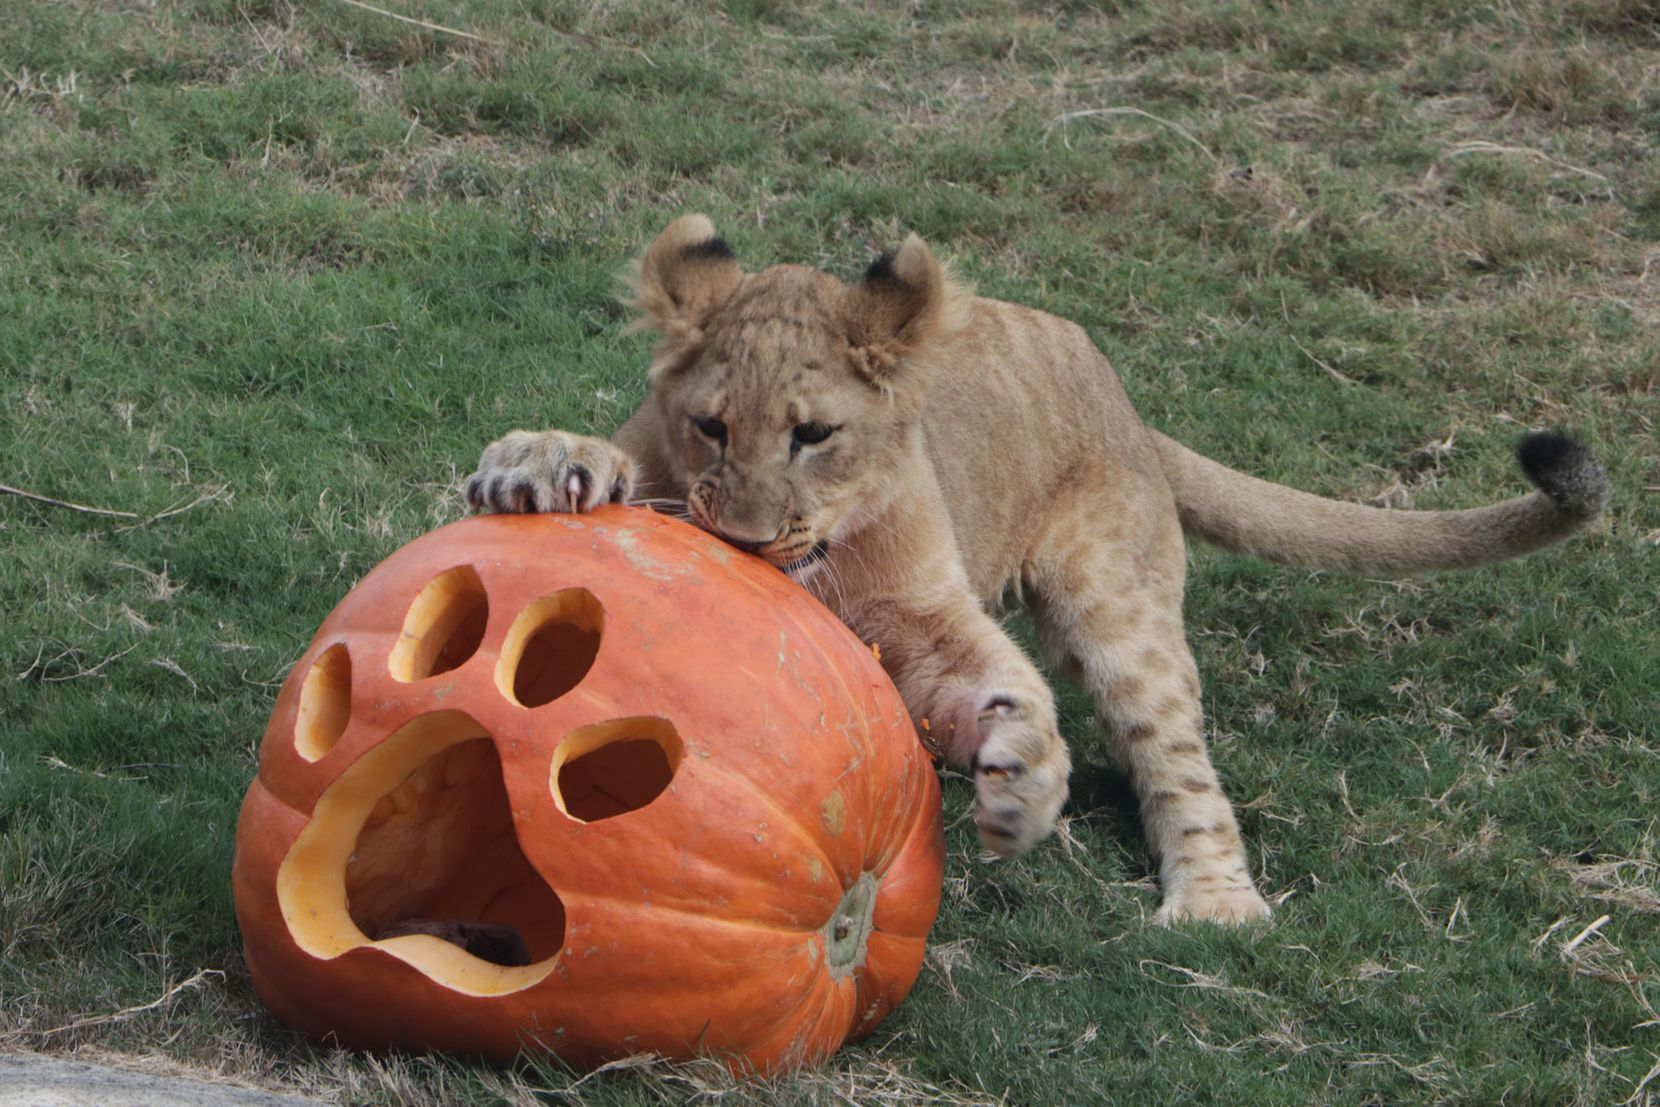 Animals at the Dallas Zoo celebrated Halloween on Tuesday with pumpkins, some filled with meaty treats or worms. Among the animals enjoying the pumpkins were lion cub Bahati, Ajabu the elephant, meerkats, giant Galapagos tortoises and hippos Adhama and Boipelo.